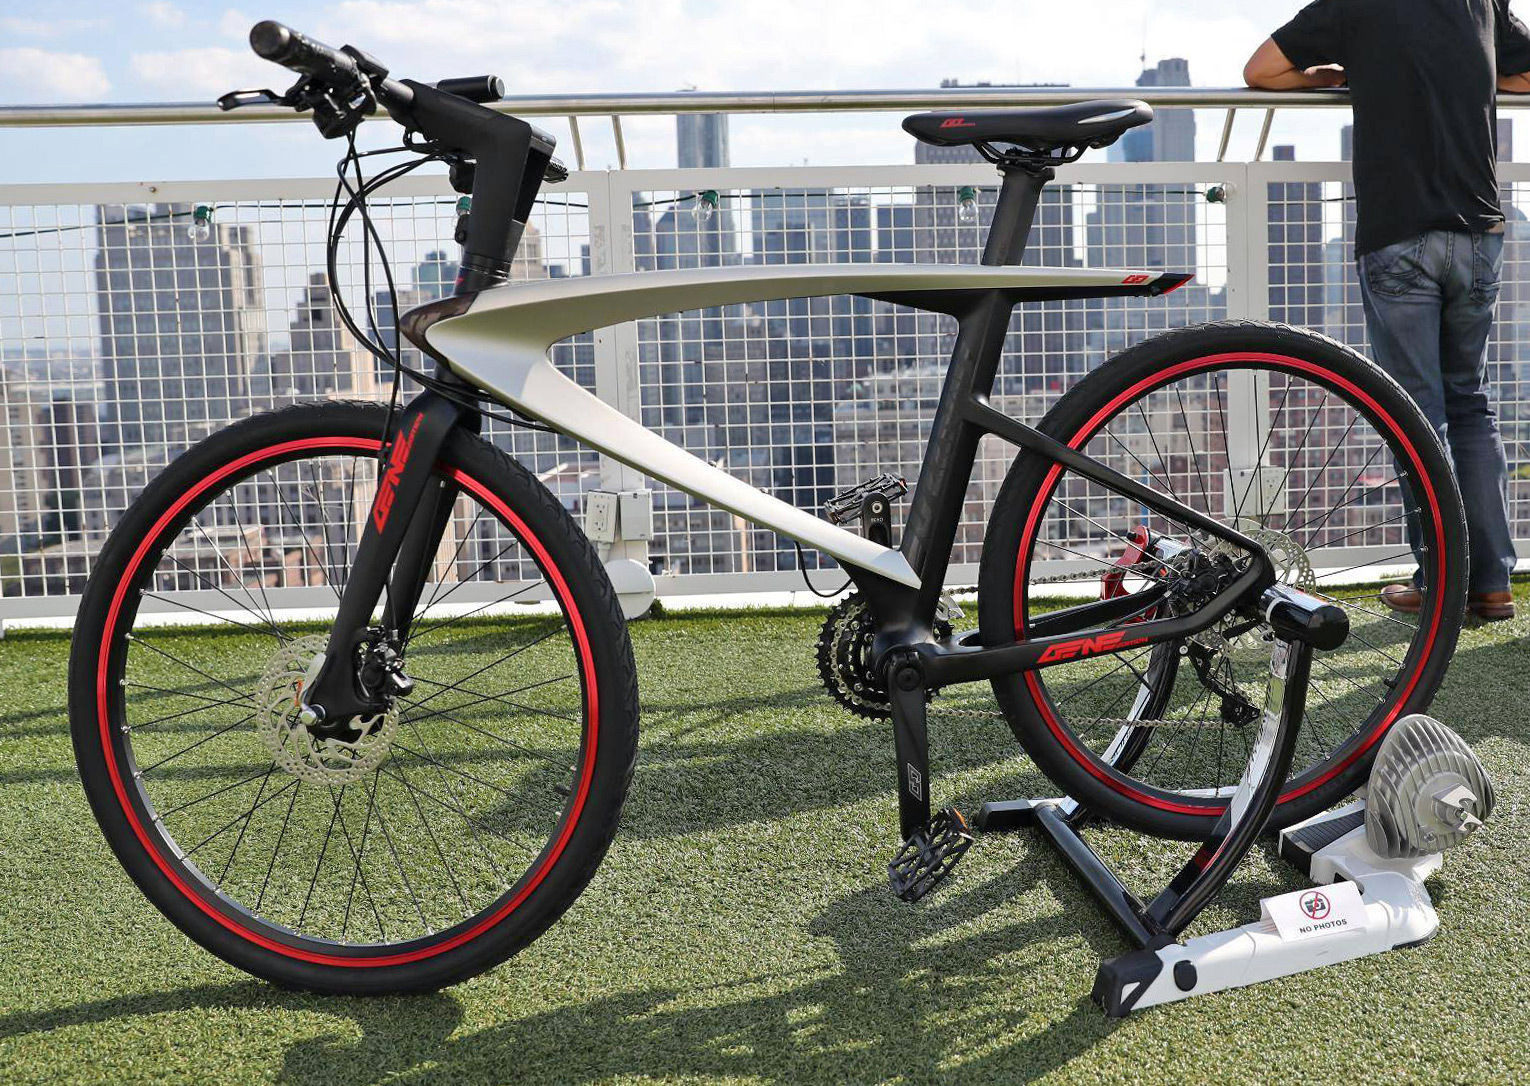 leeco_buzzard_commuter-super-bike_integrated-electronics-sensors-android-bikeos_rooftop